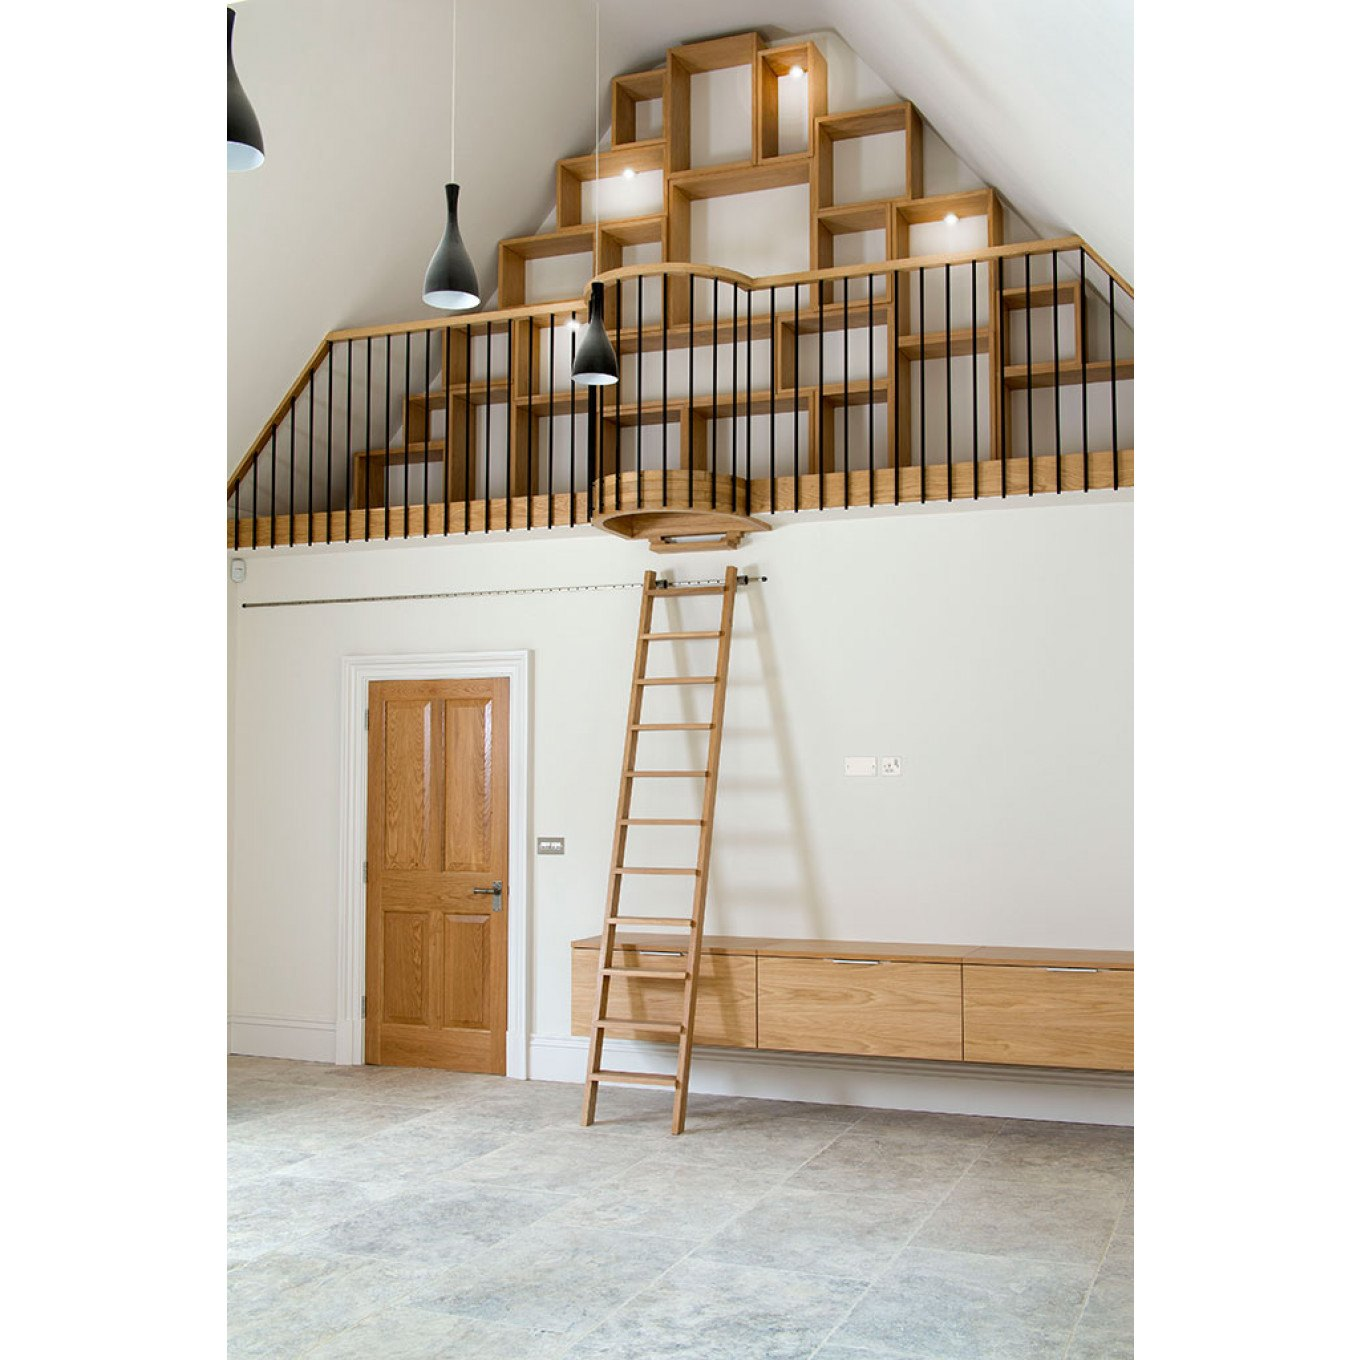 Rolling Ladder In Vaulted Area Of Kitchen From Peter. Rolling Ladder In  Vaulted Area Of Kitchen From Peter